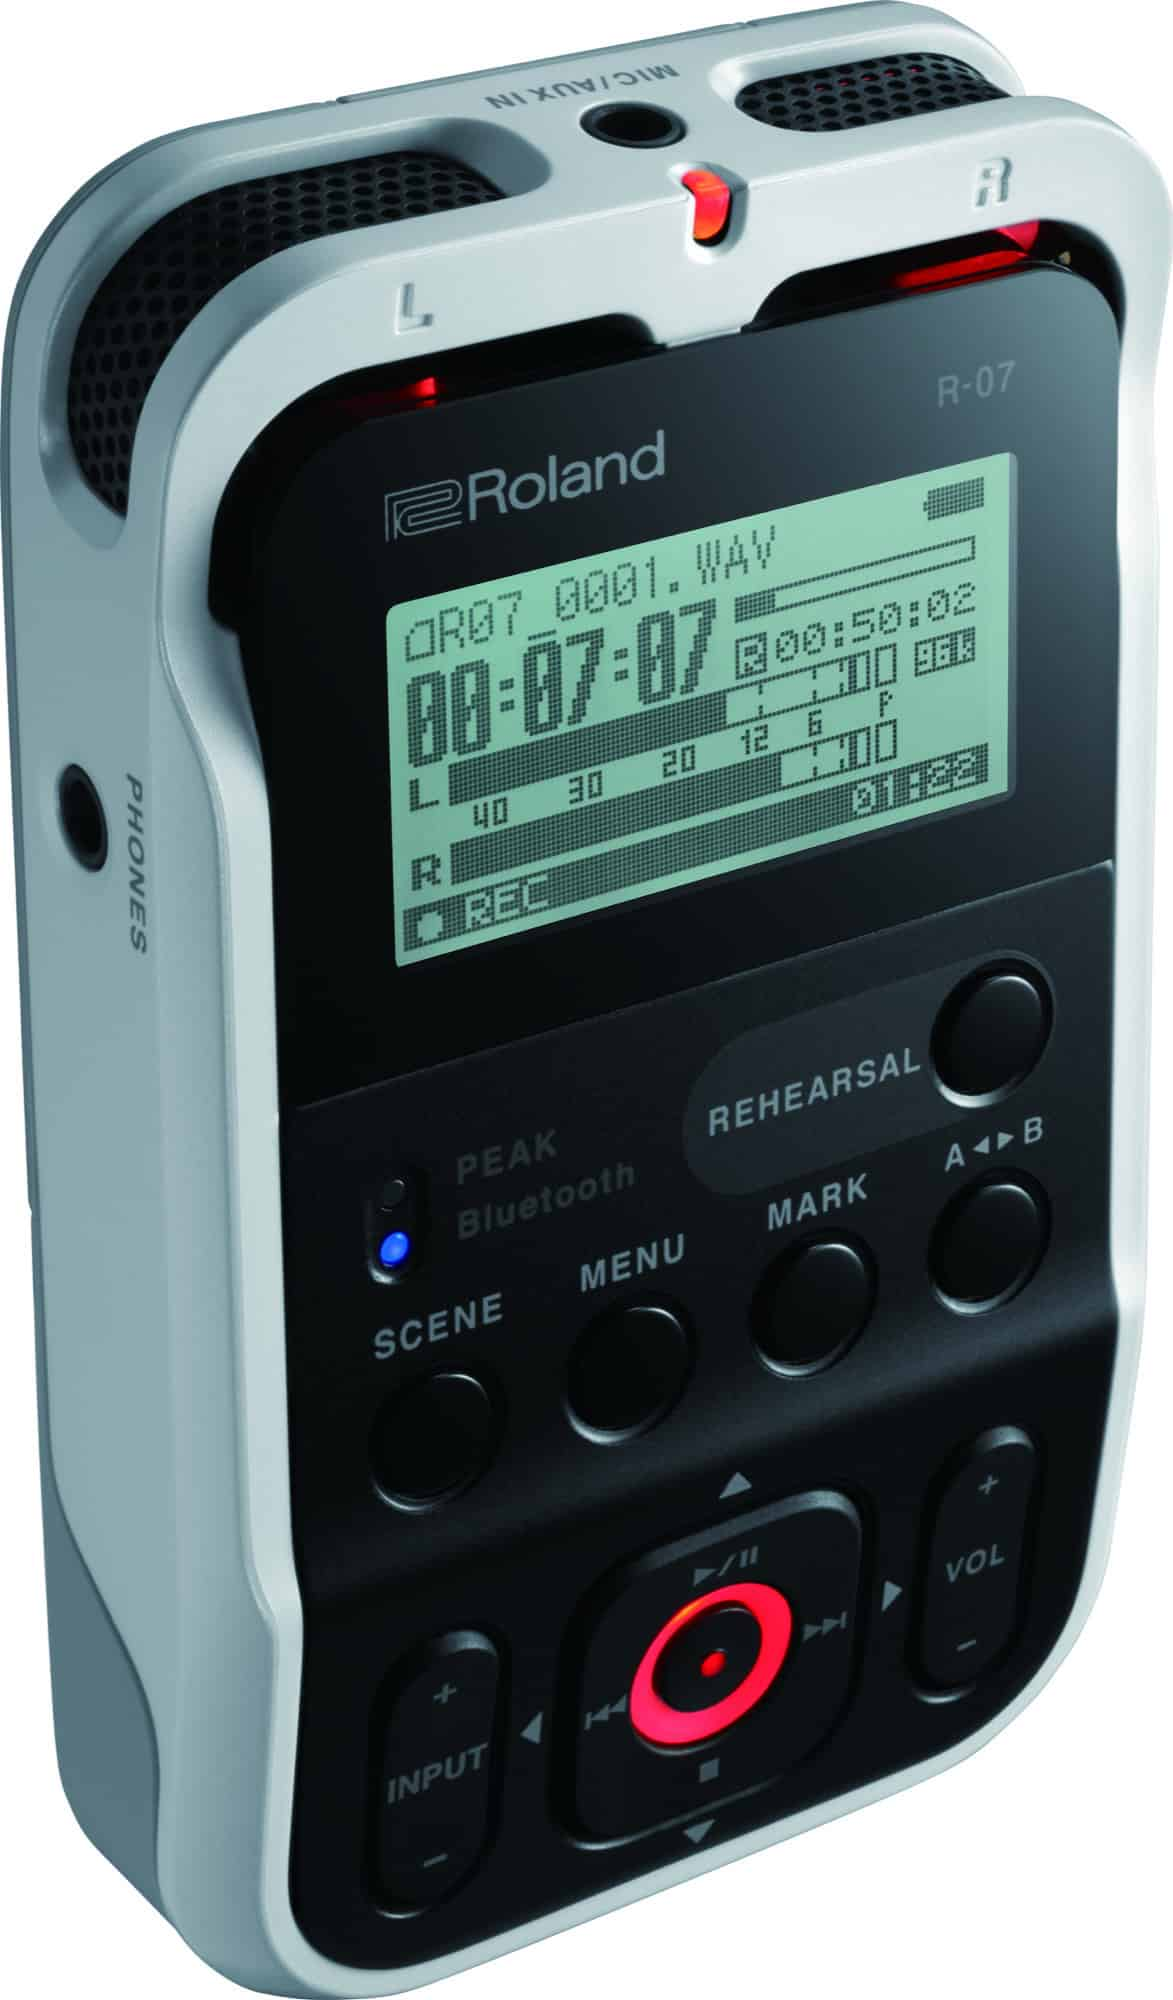 The Roland R-07 recorder even looks super-cool.